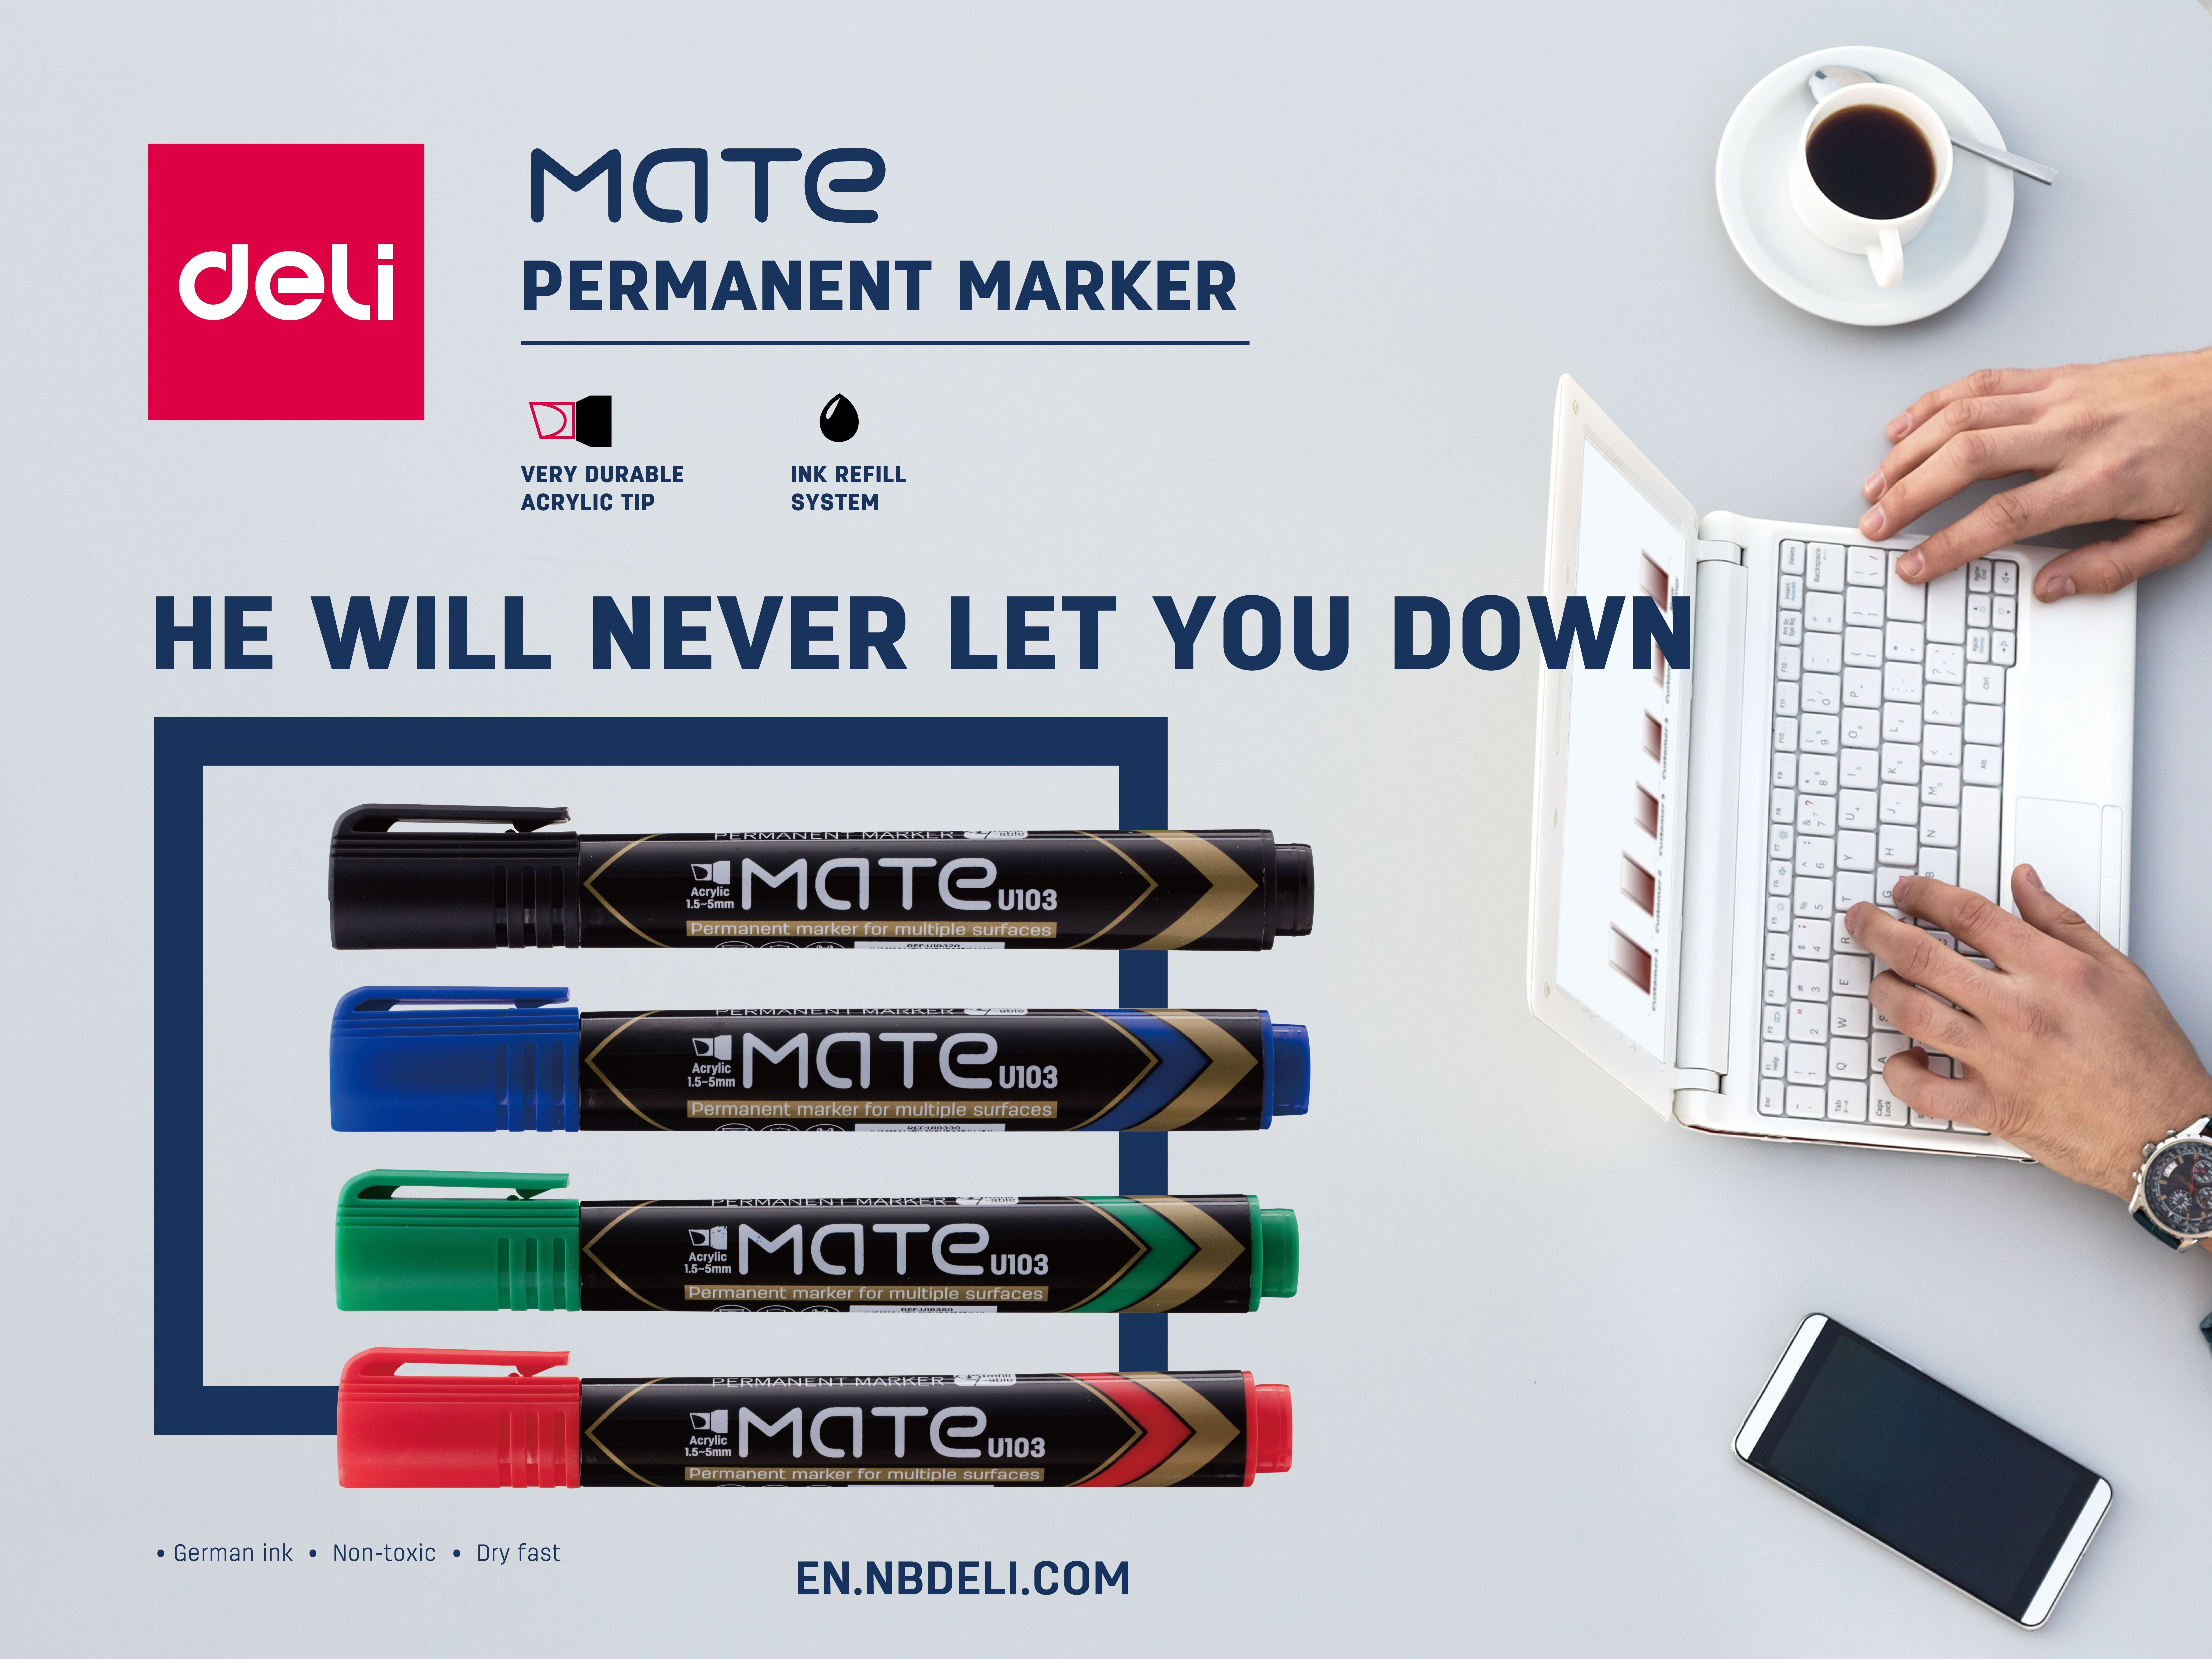 Deli MATE range permanent marker he will never let you down ■Very